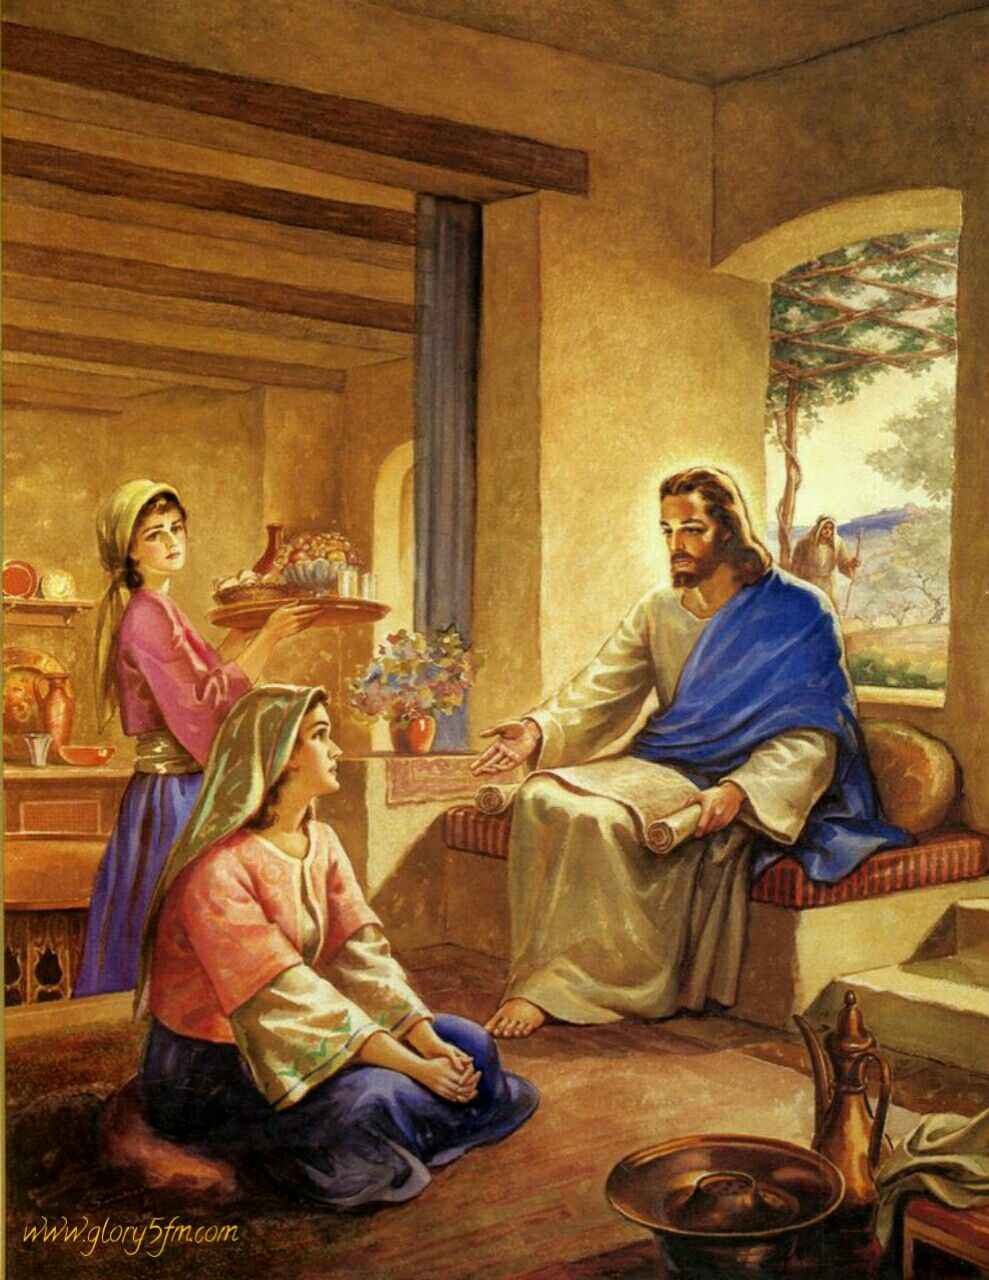 When Martha had opened her home to Jesus (Luke 10:38), Mary had opened her heart to Him.